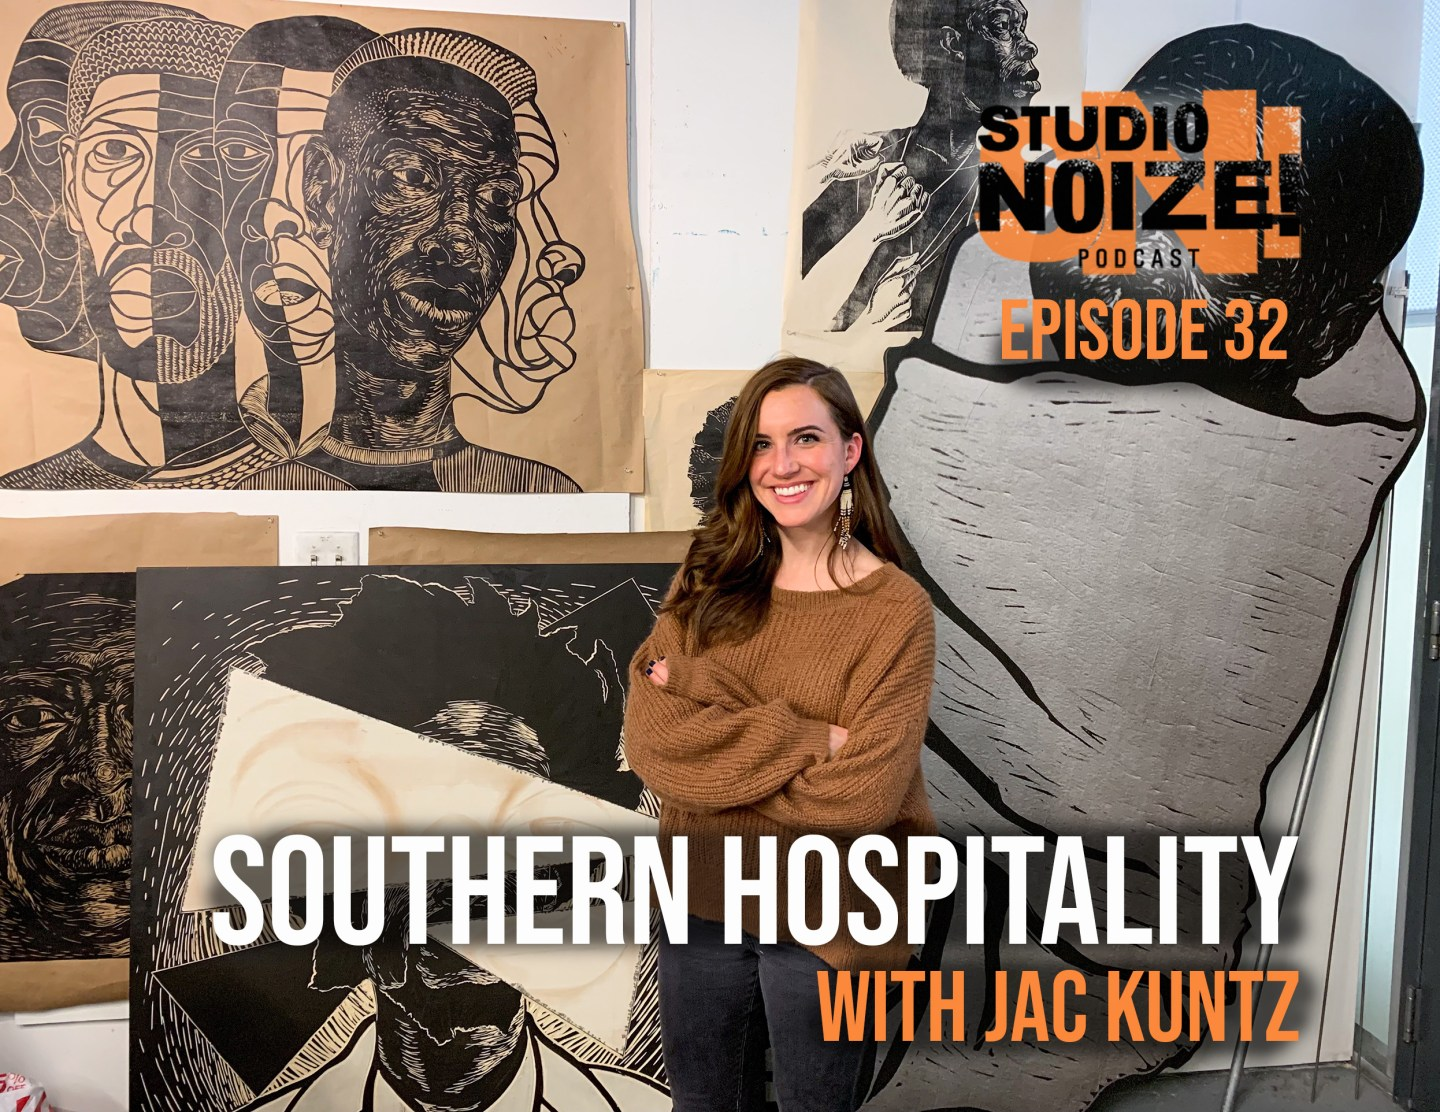 Studio Noize Podcast: Southern Hospitality With Jac Kuntz